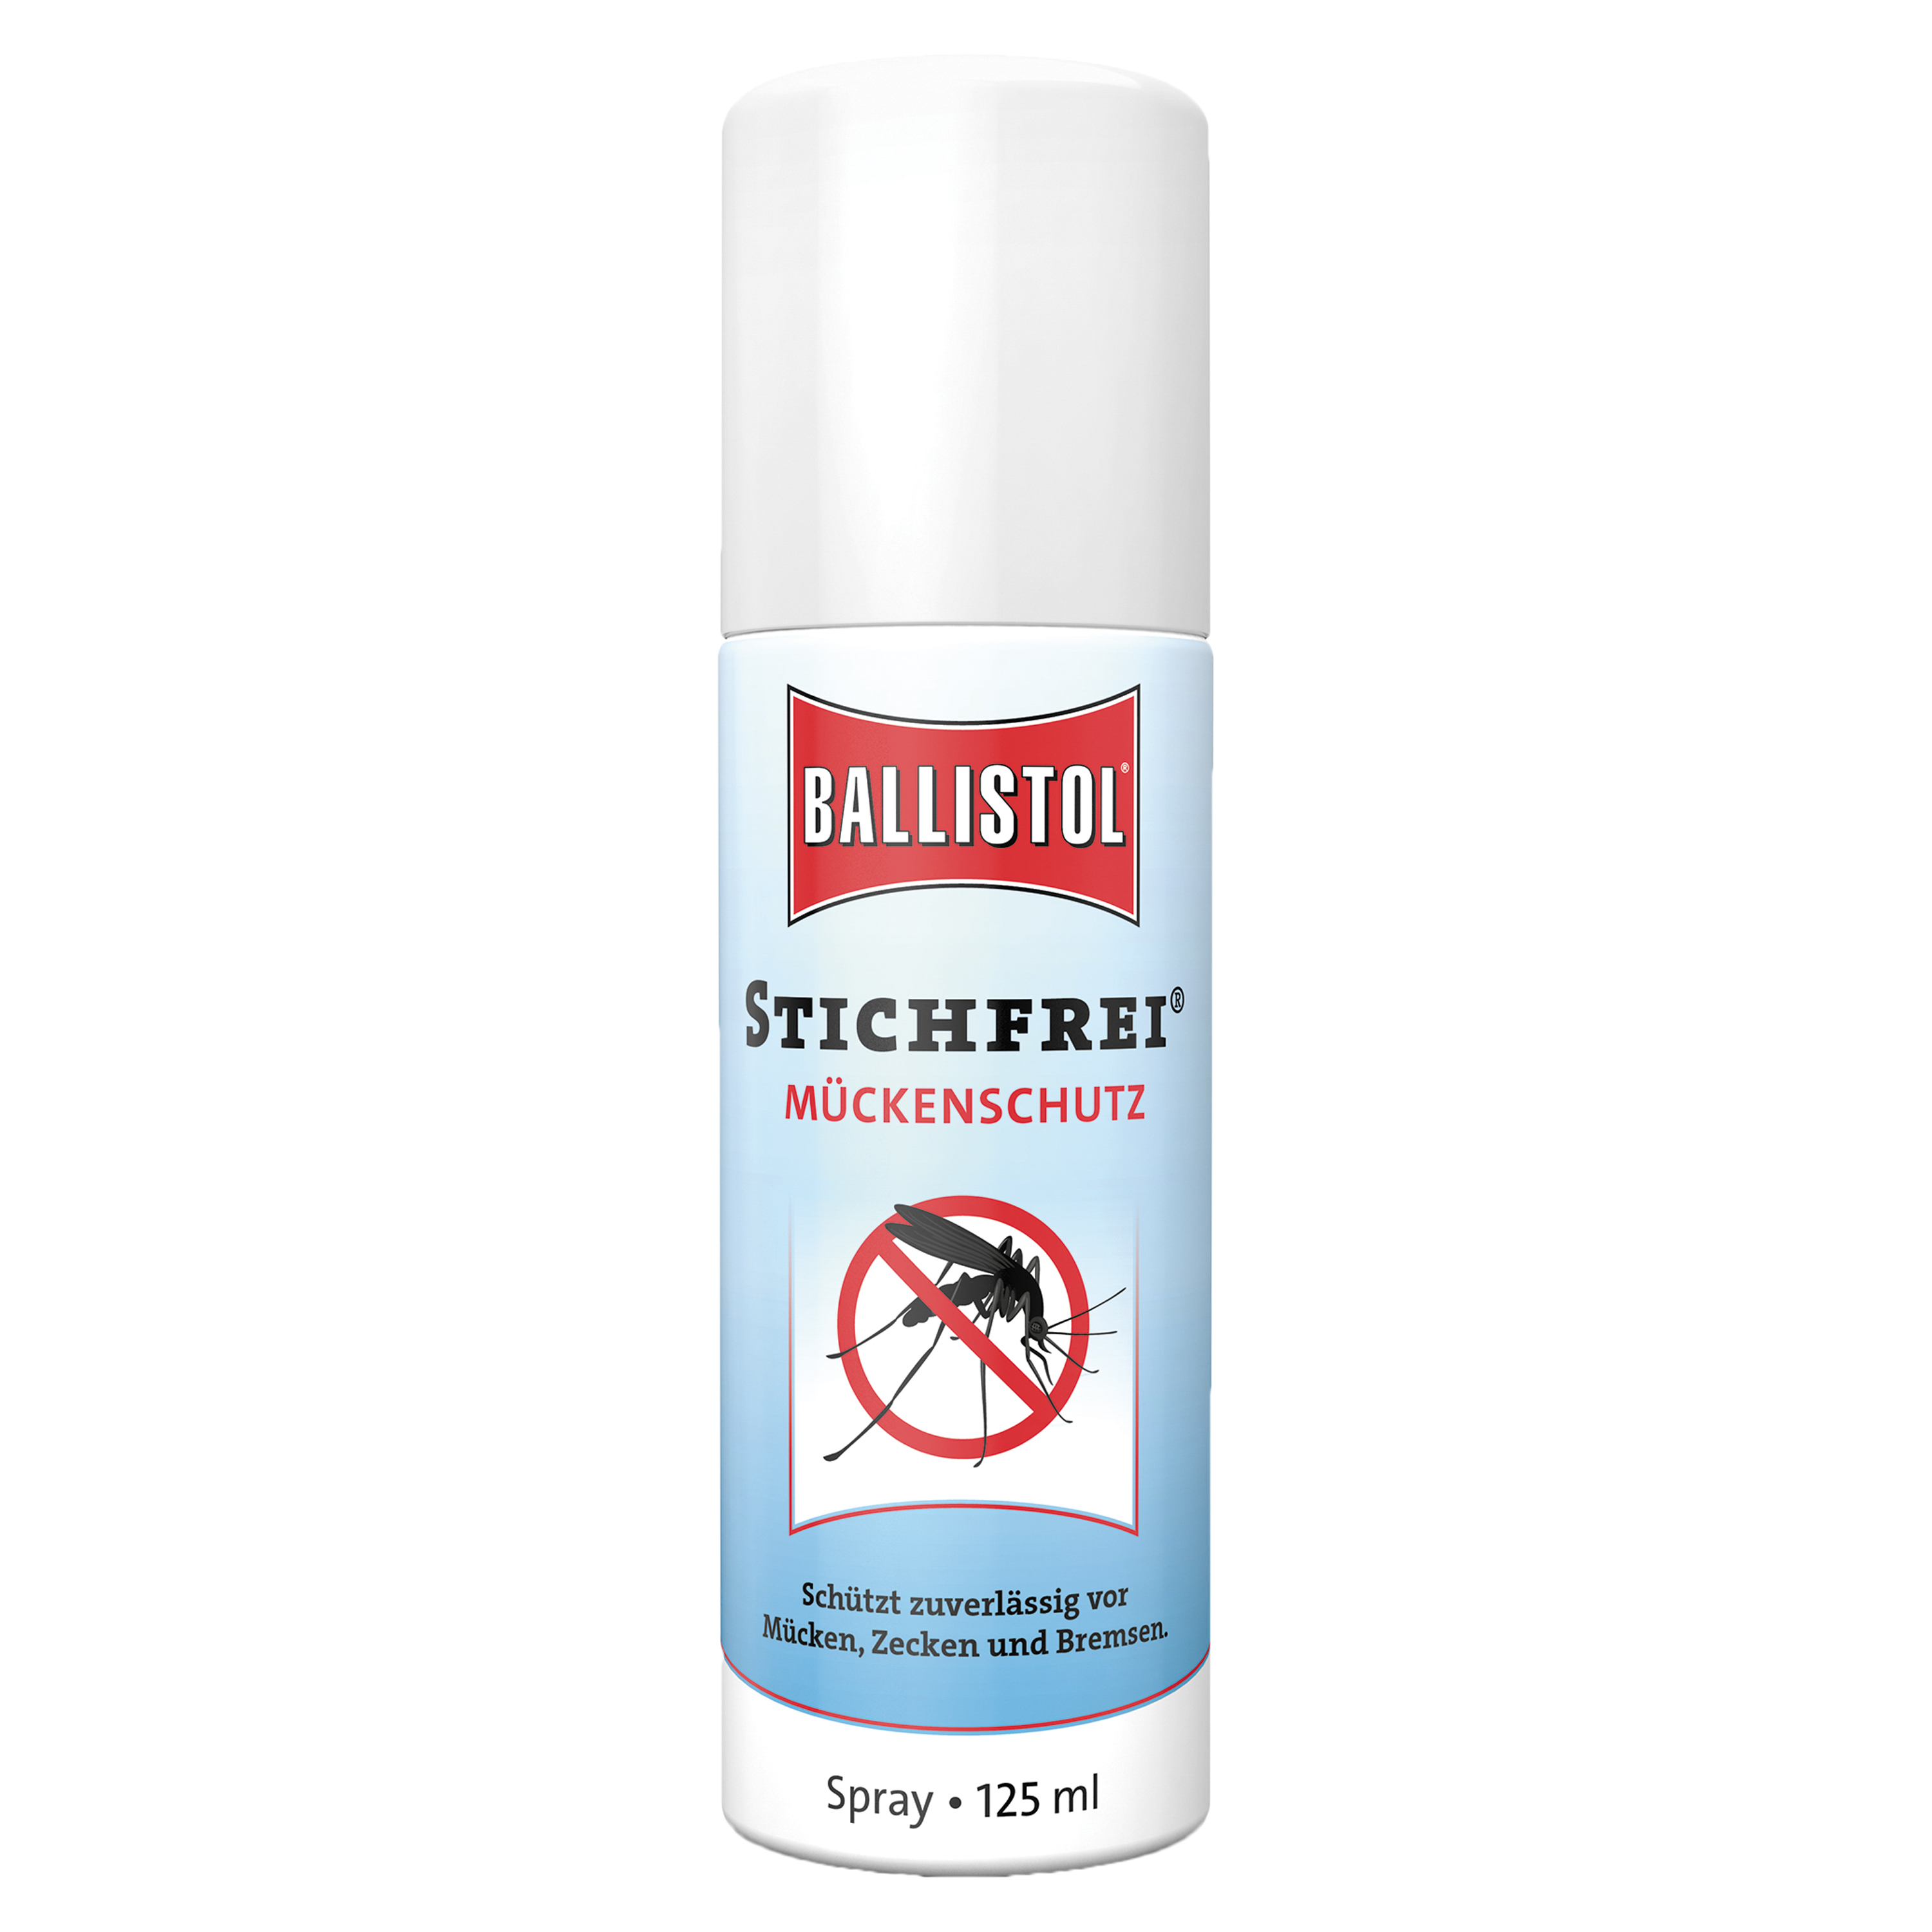 Insect Protection Stichfrei Spray 125 ml